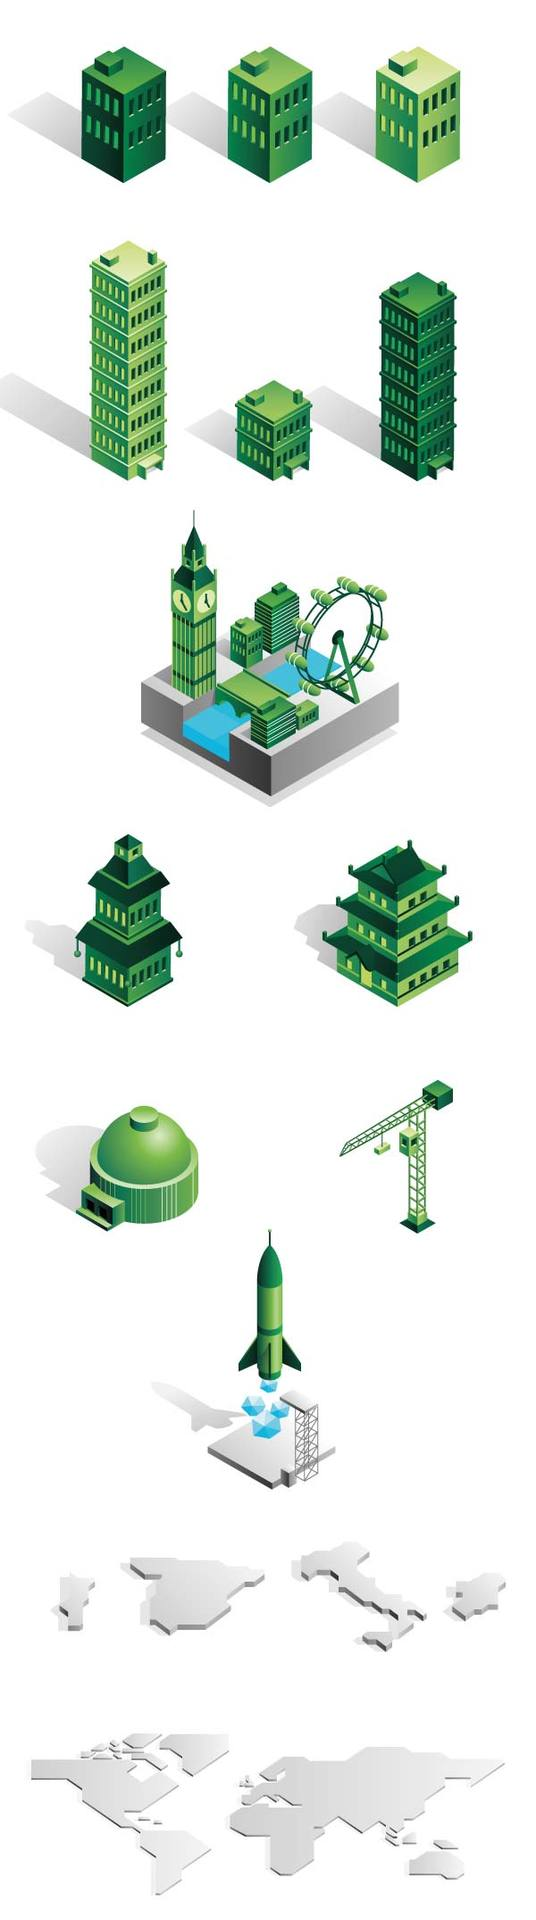 weandthecolor: Isometric Objects for a Series of Animated Infographics Animation studio Veni Vídeo Vici was commissioned by CBRE to develop some animated infographics for a real estate report. Check out more of the graphics and the final animations on WATC. Follow WATC on: Facebook Twitter Google+ Pinterest Flipboard Instagram